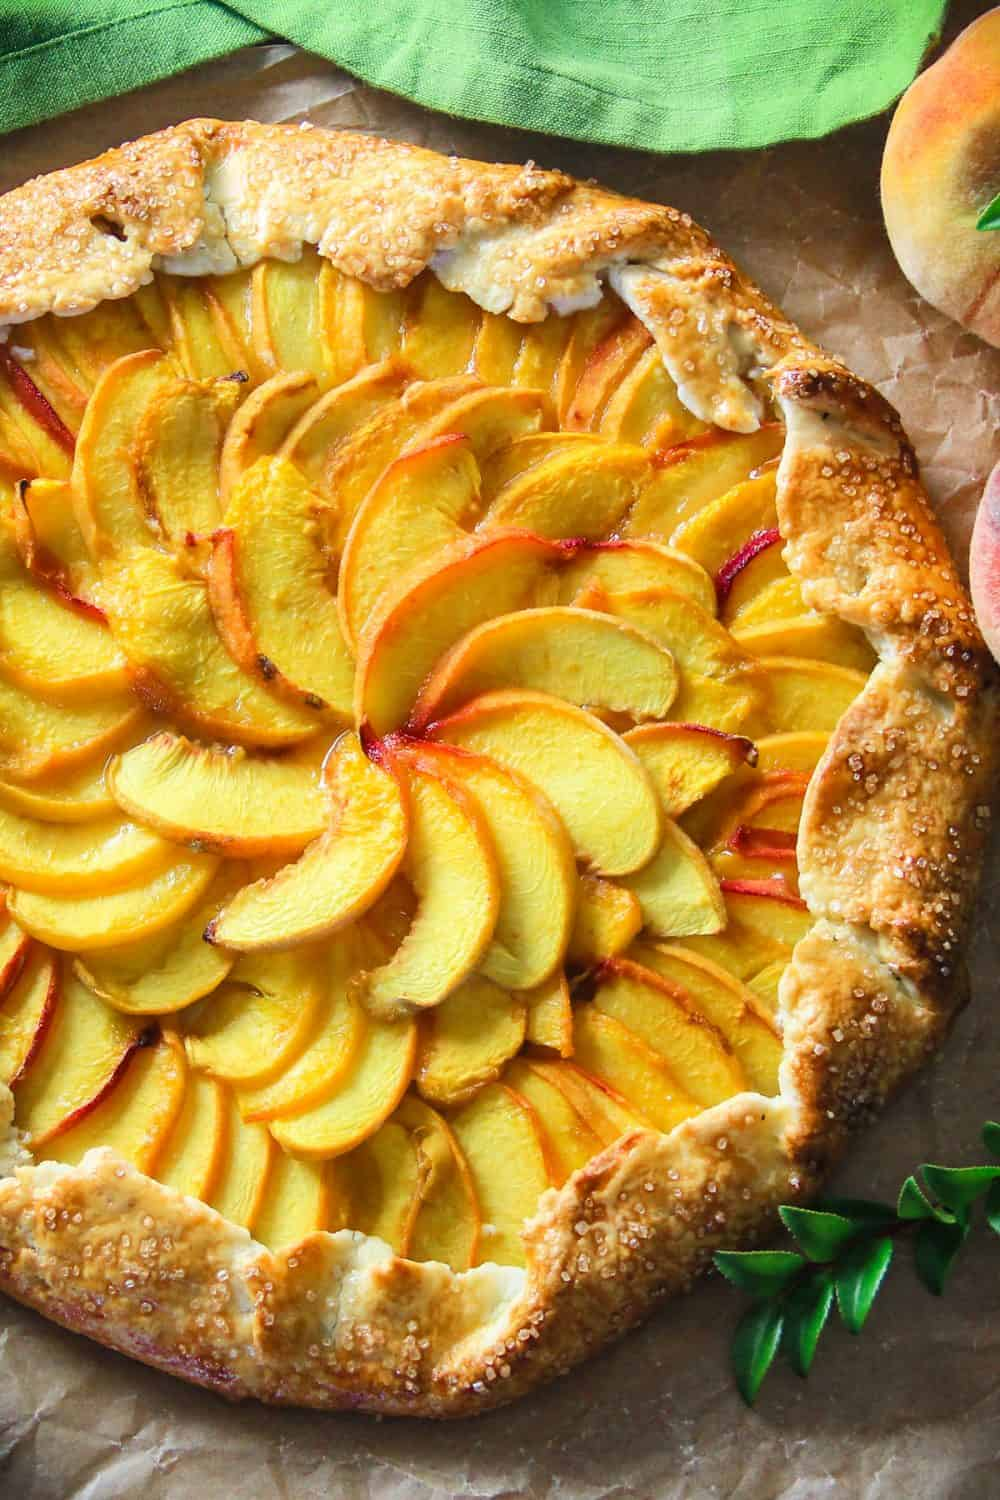 Overhead image of the peach galette laying on a brown paper surface with fresh peaches and a green napkin in the background